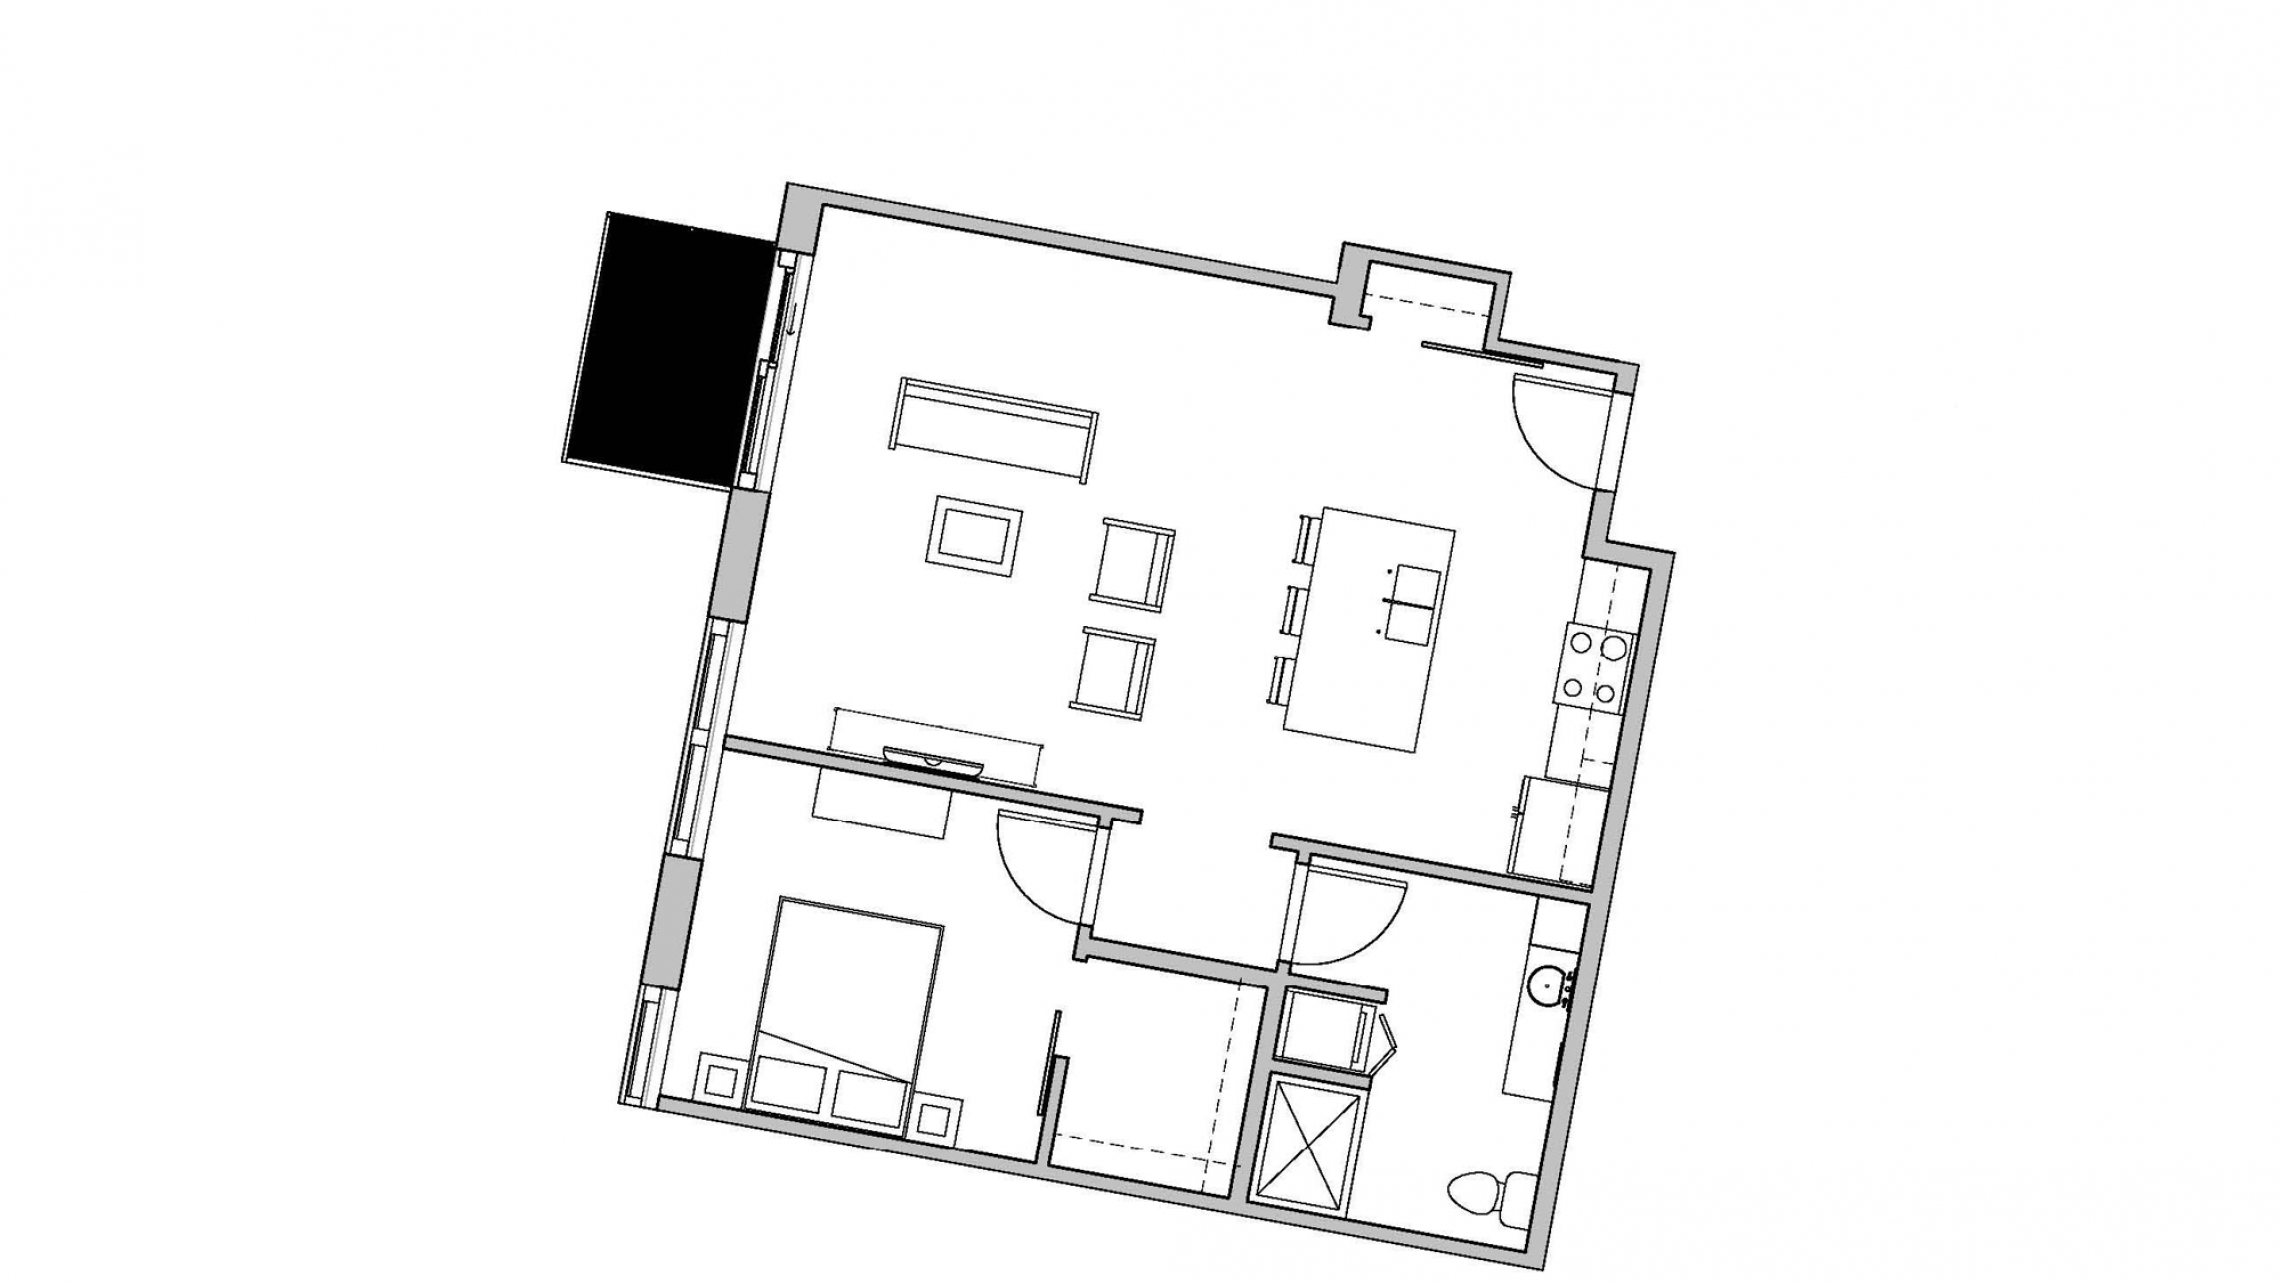 ULI Seven27 528 - One Bedroom, One Bathroom